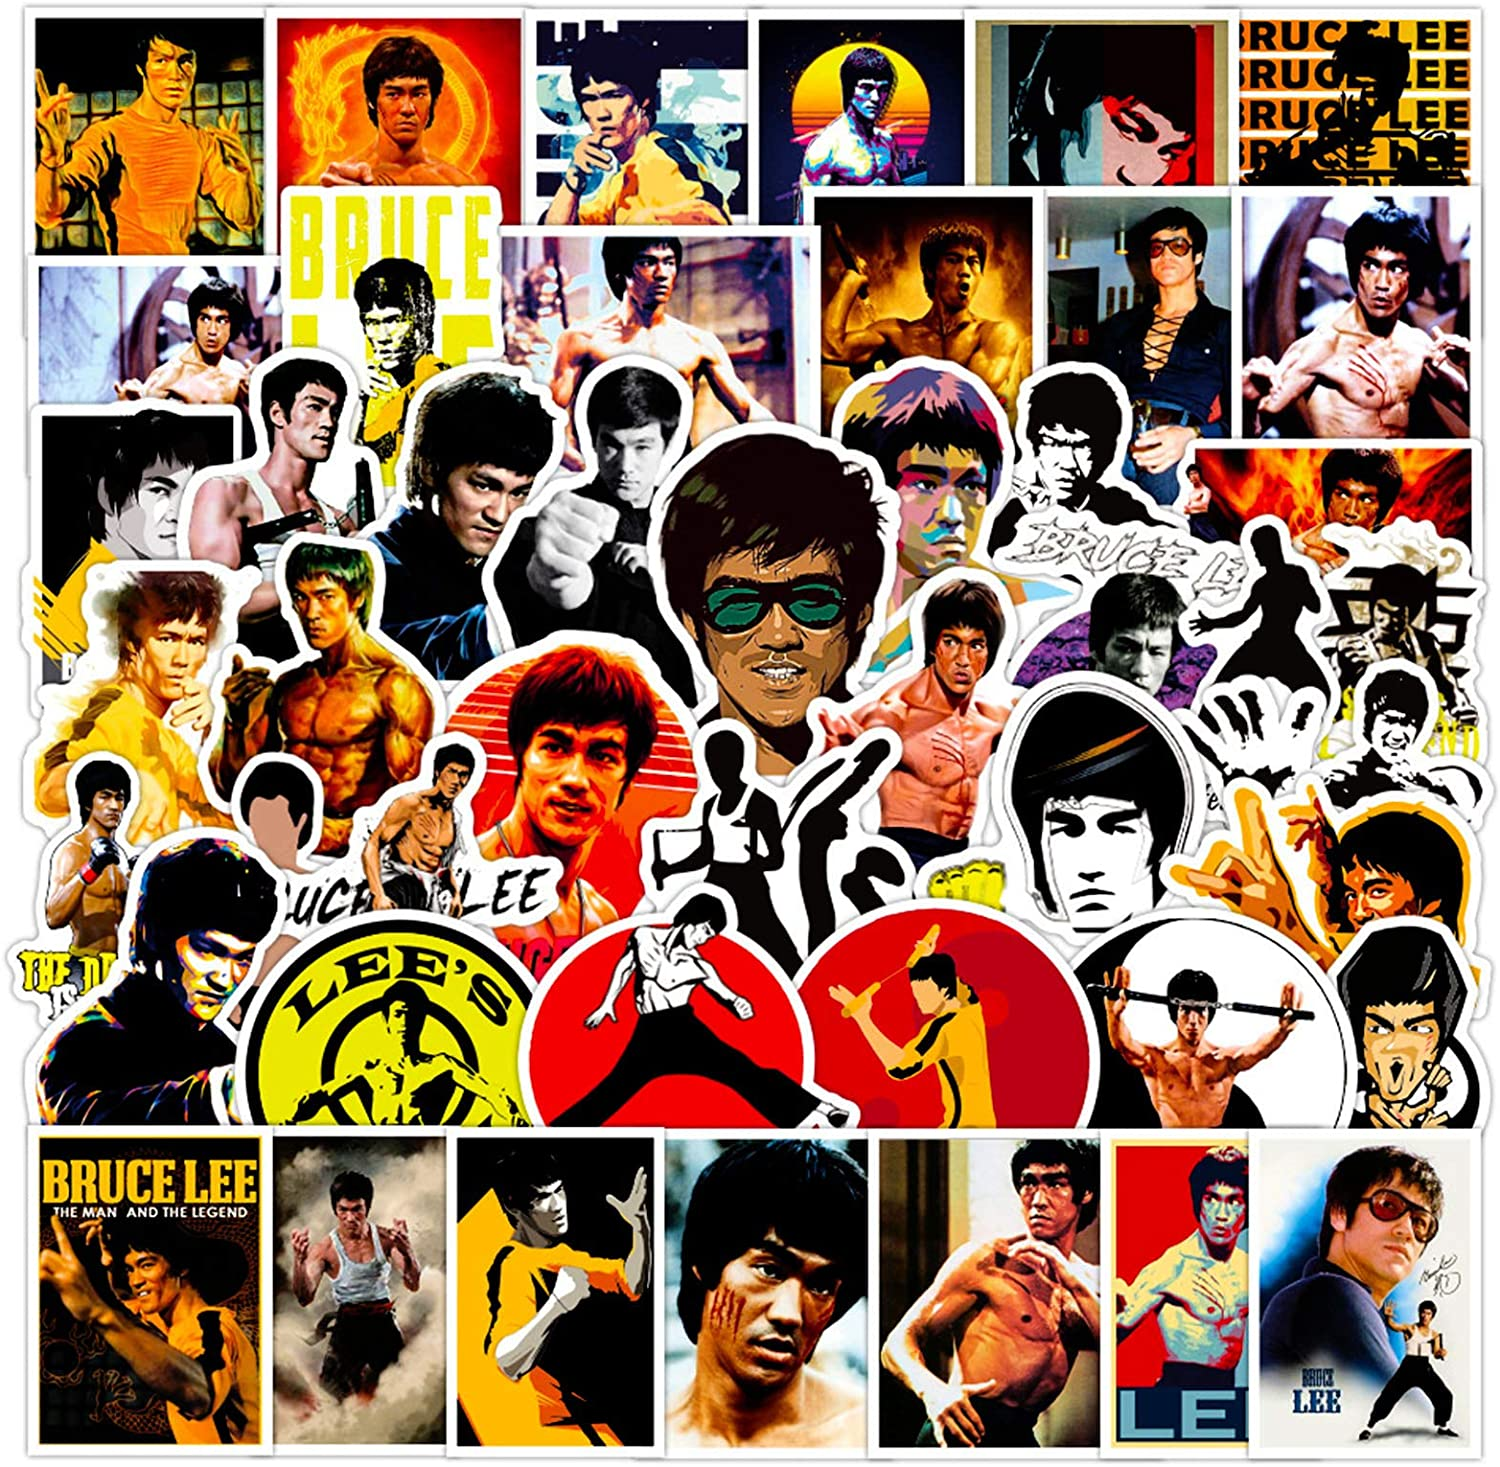 Bruce Lee Laptop Stickers Decals 50pcs Vintage Kungfu Actor Poster Stickers for Computer Water Bottles Bike Motorcycle Skateboard Collection